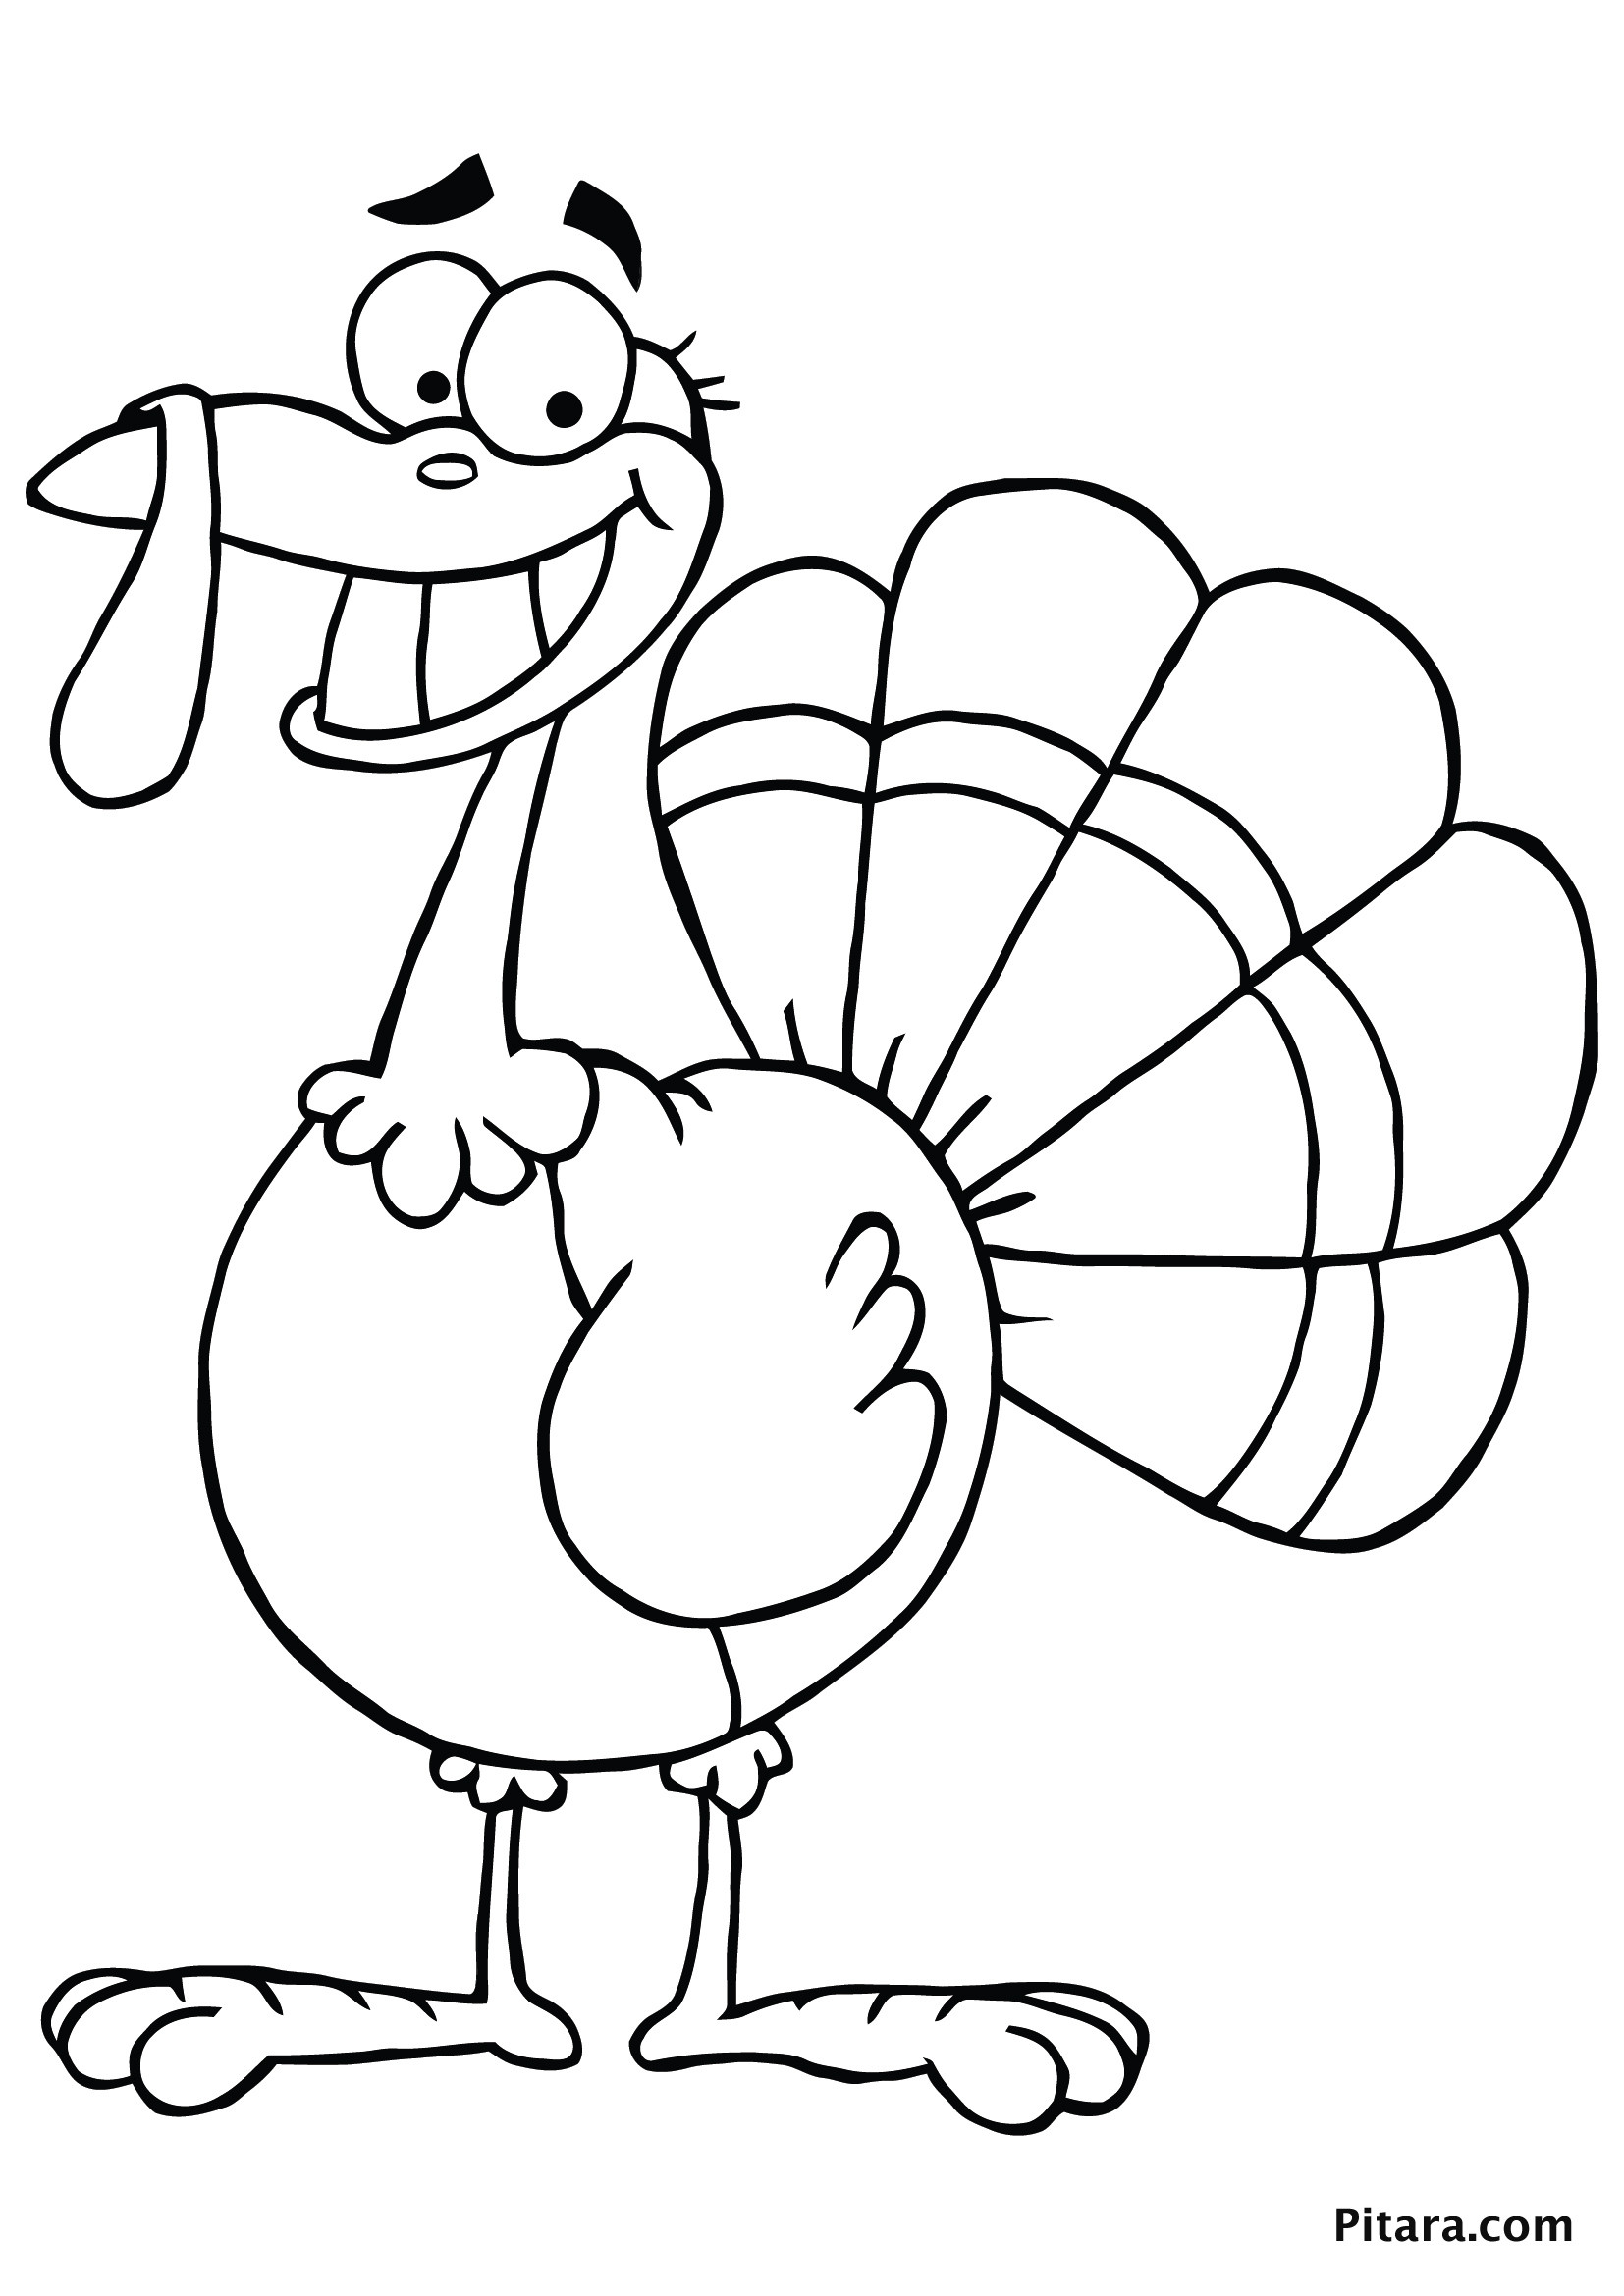 Thanksgiving Turkey To Color  Turkey Coloring Pages for Kids